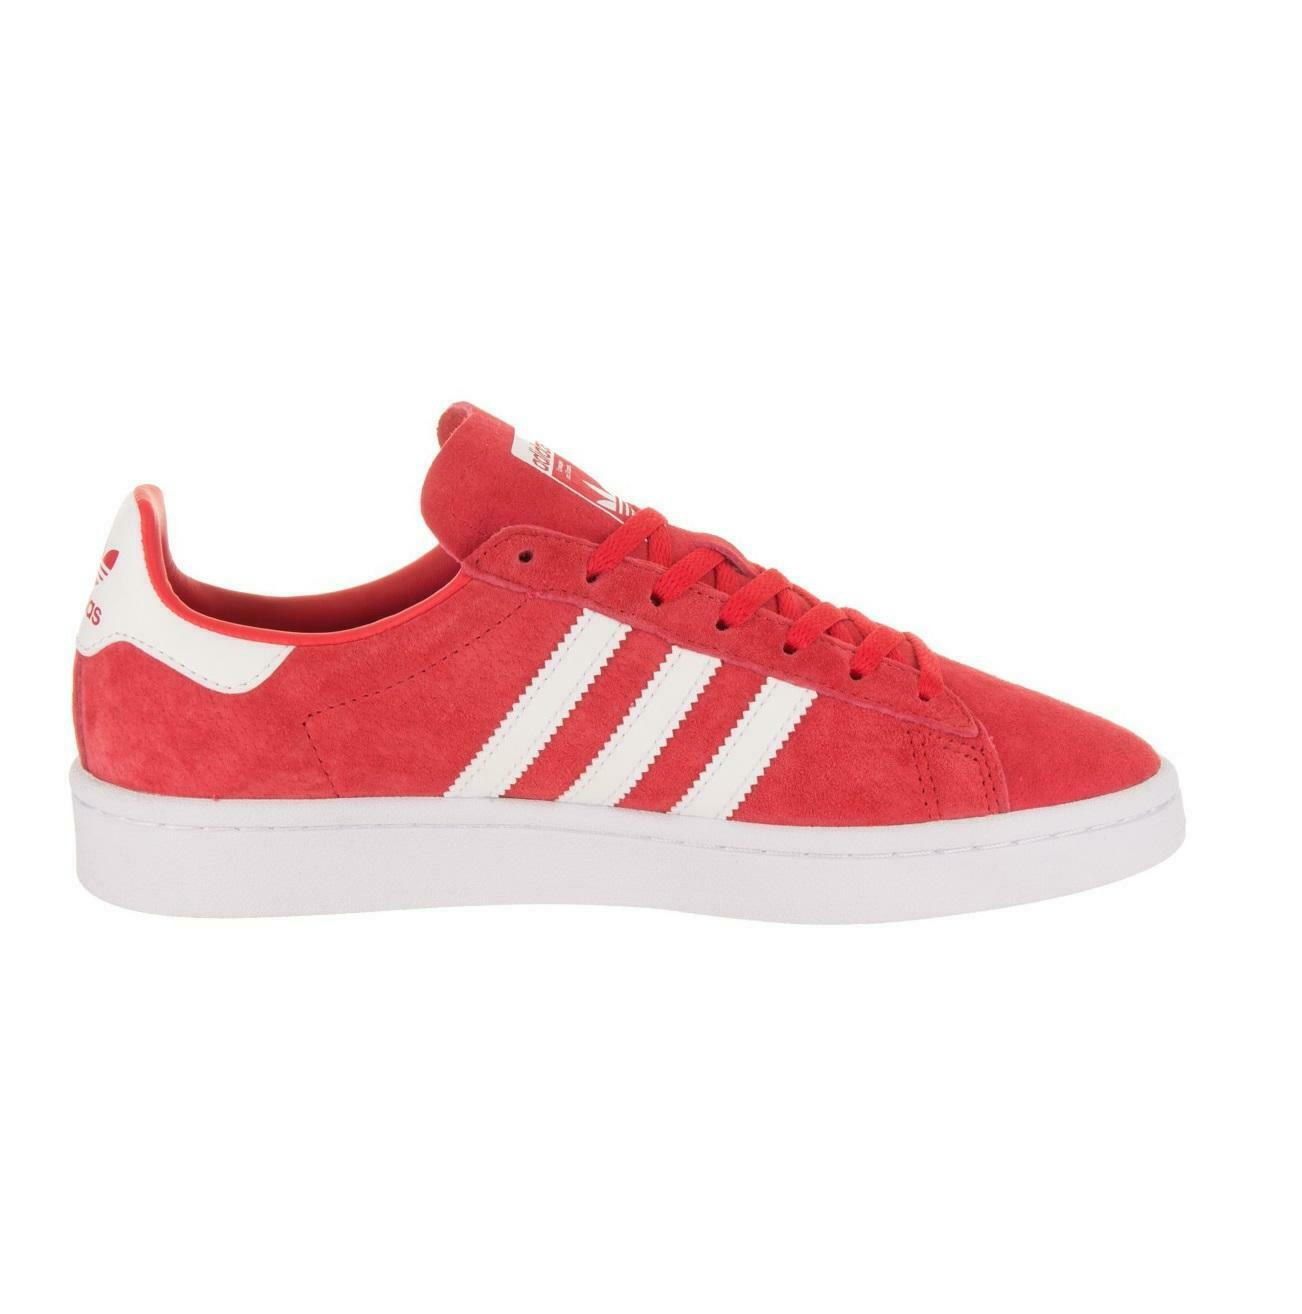 Womens ADIDAS CAMPUS W Red Trainers DB1018